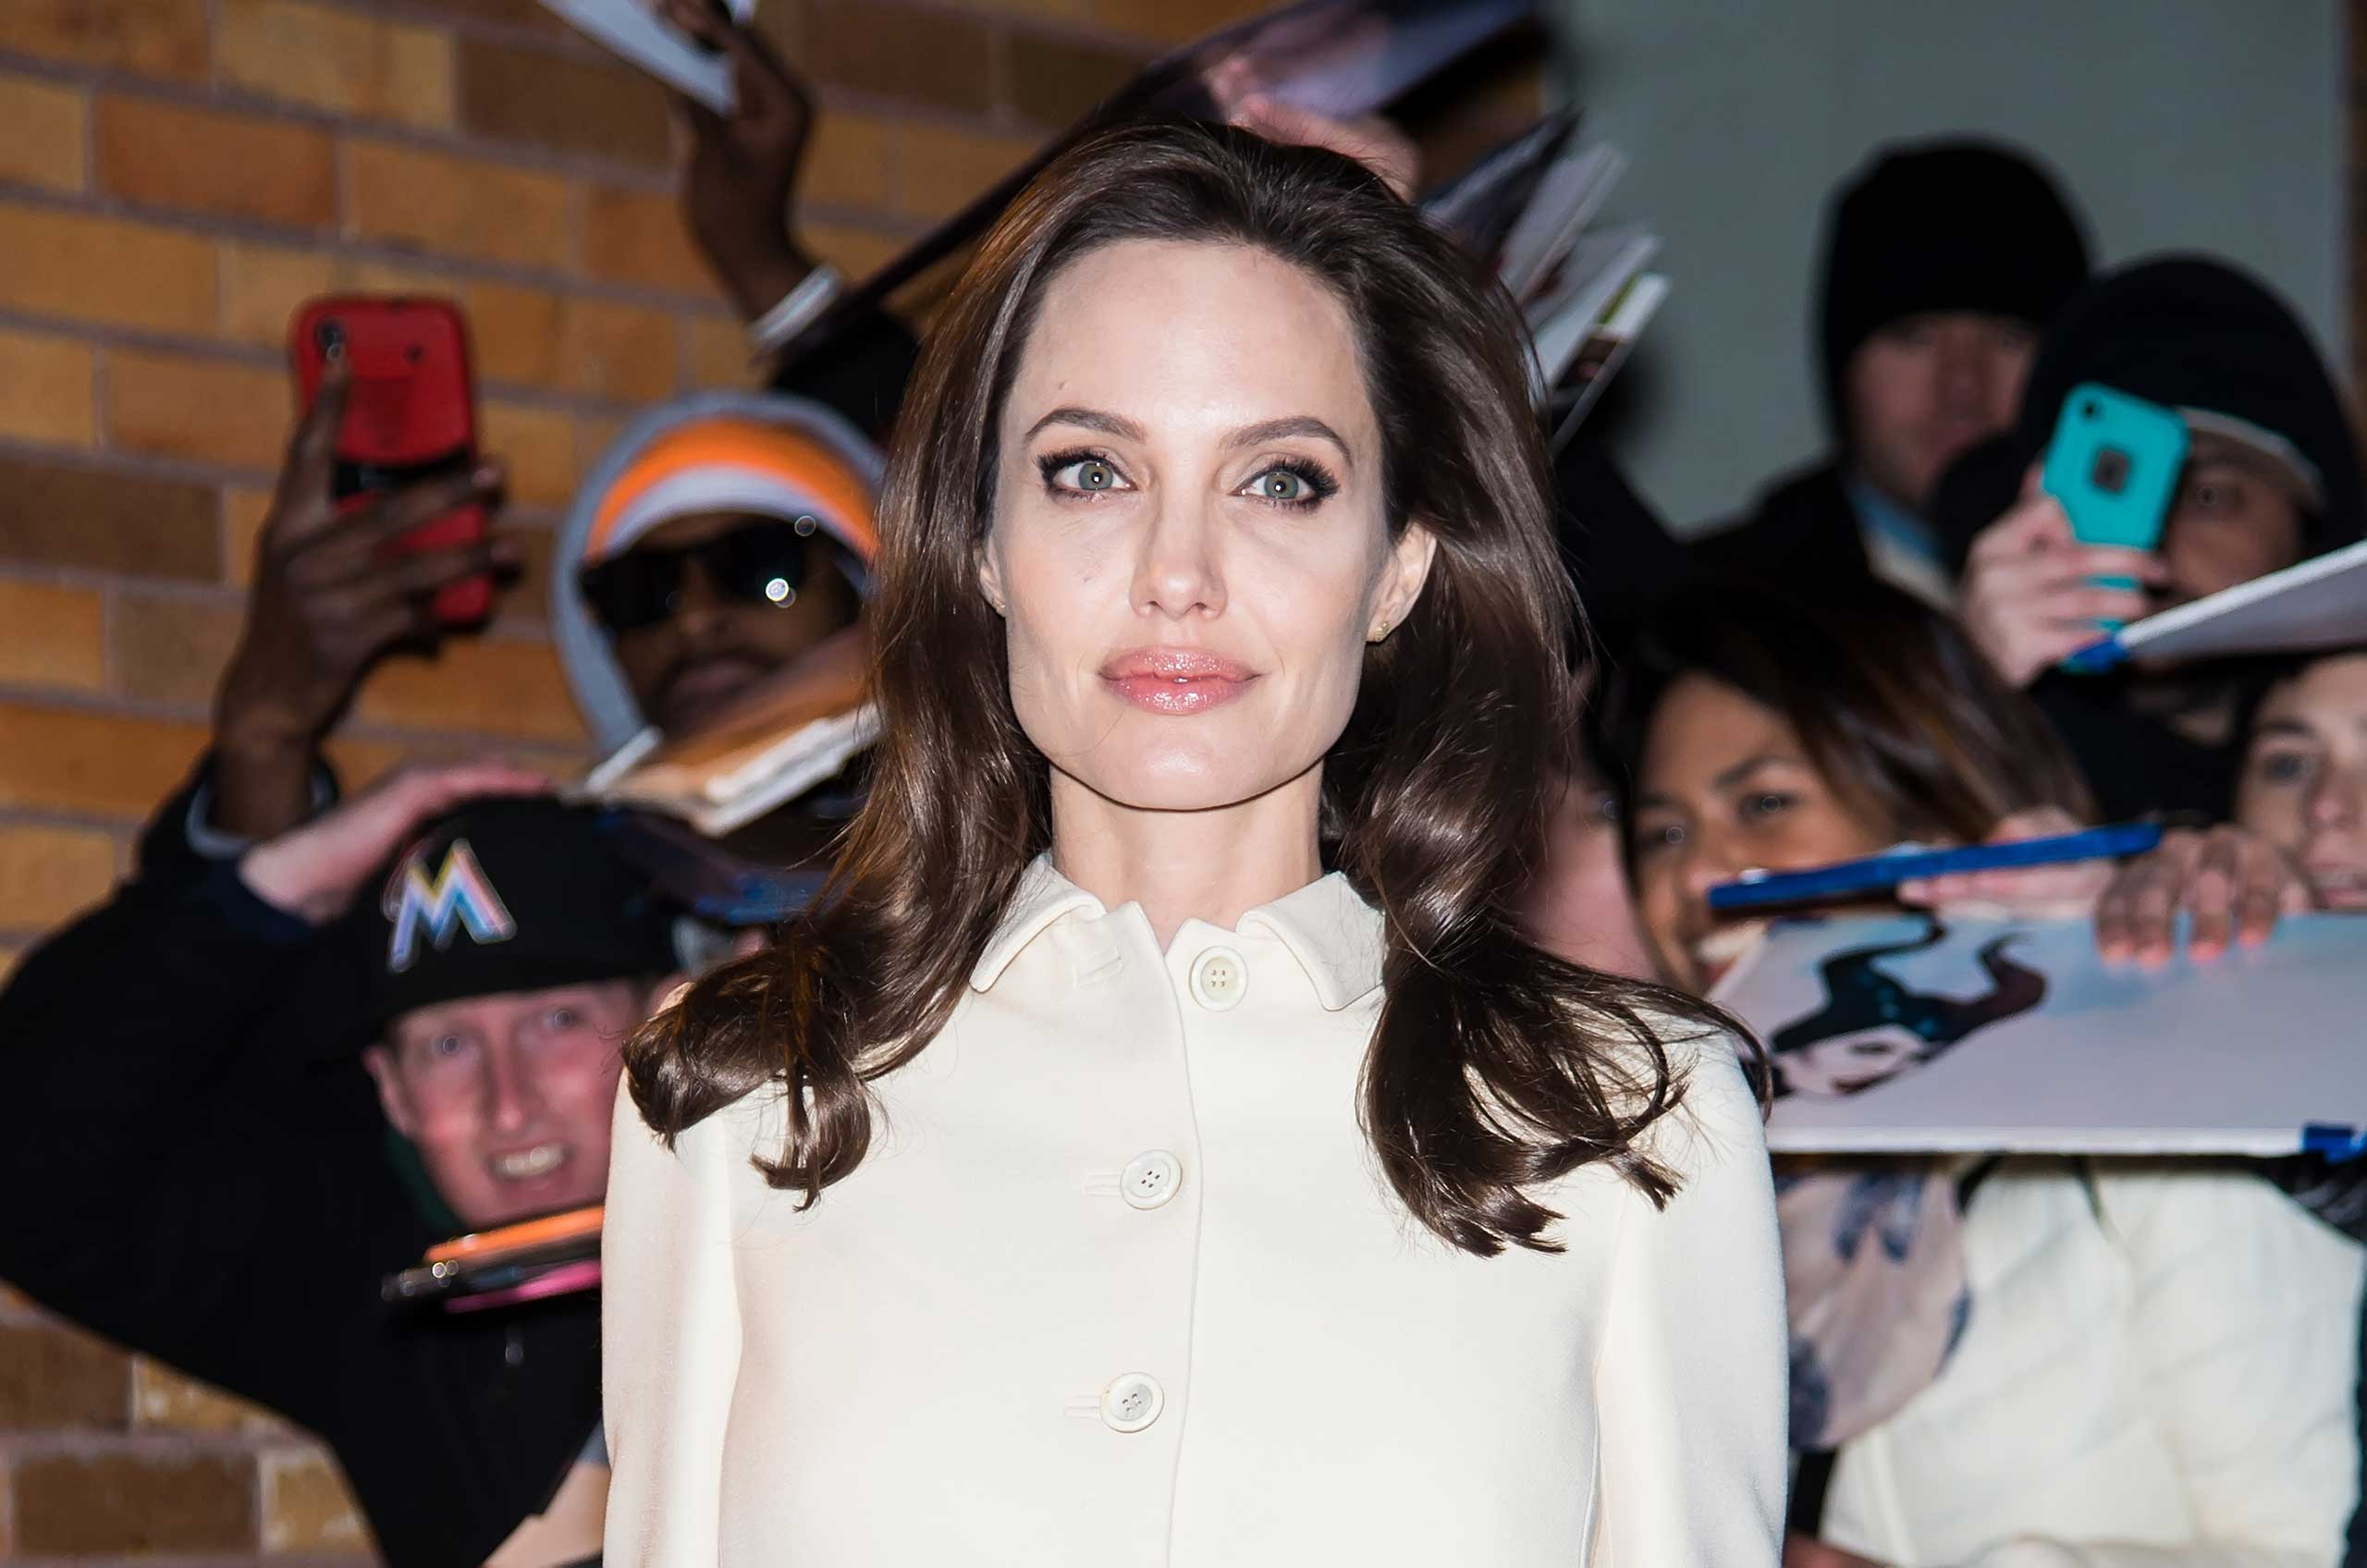 Actress Angelina Jolie is seen leaving The Daily Show with Jon Stewart on Dec. 4, 2014 in New York City.